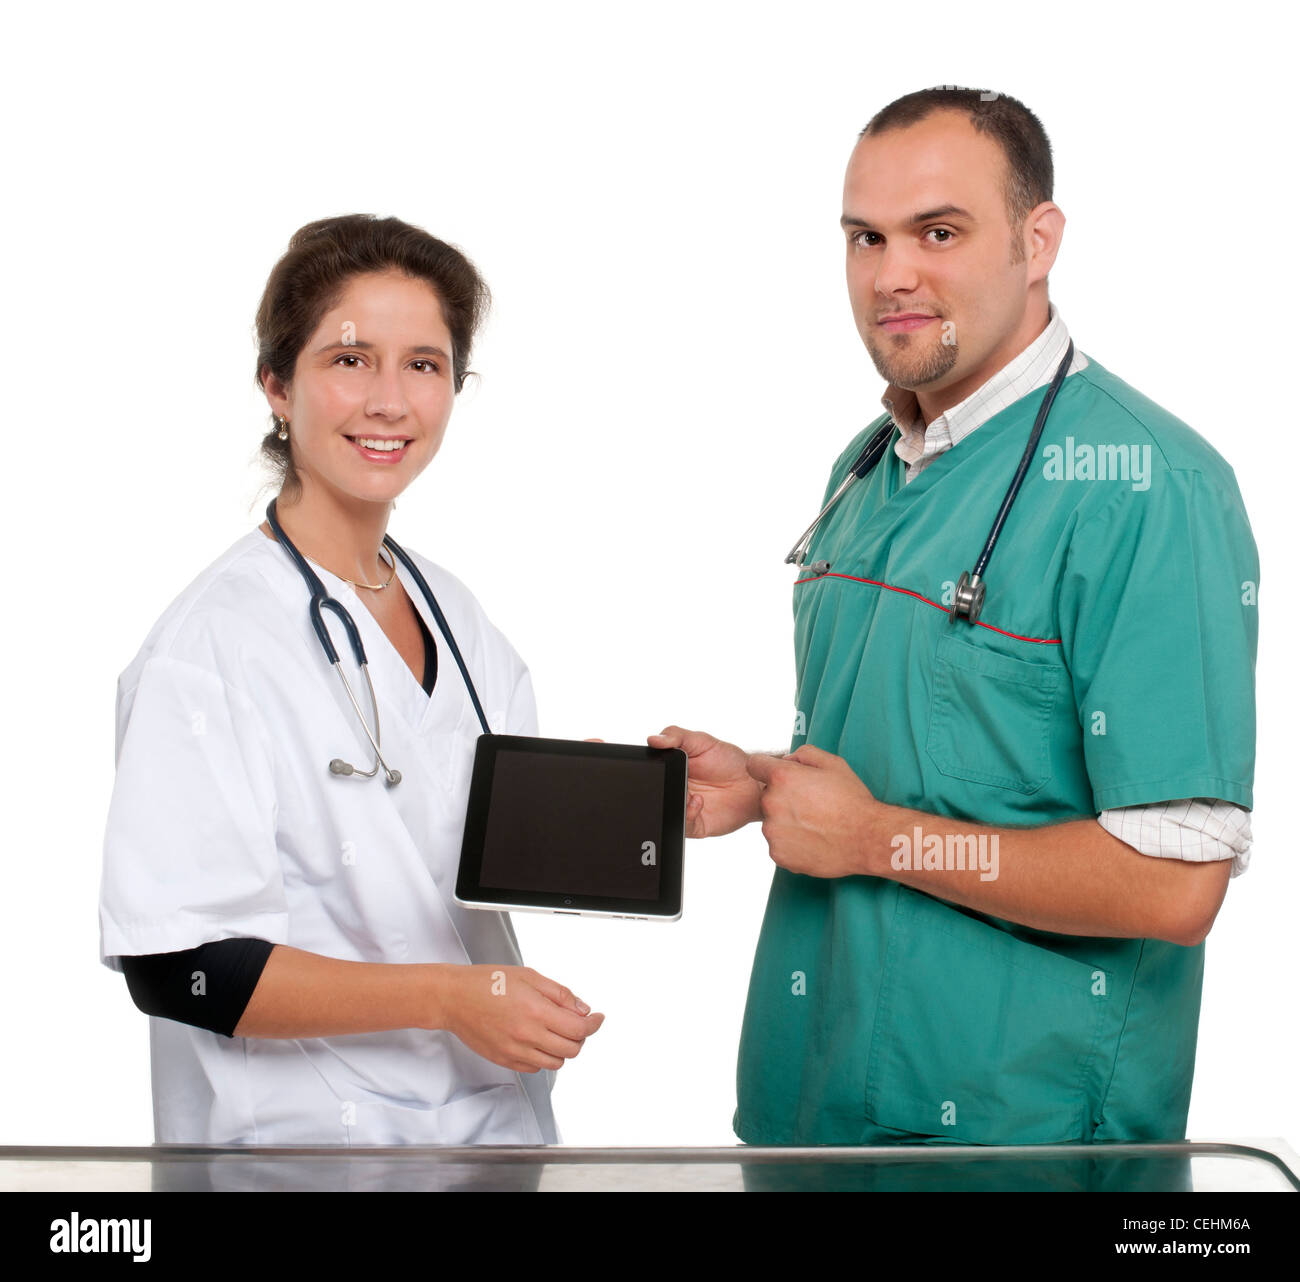 Vets holding a tablet in front of white background - Stock Image